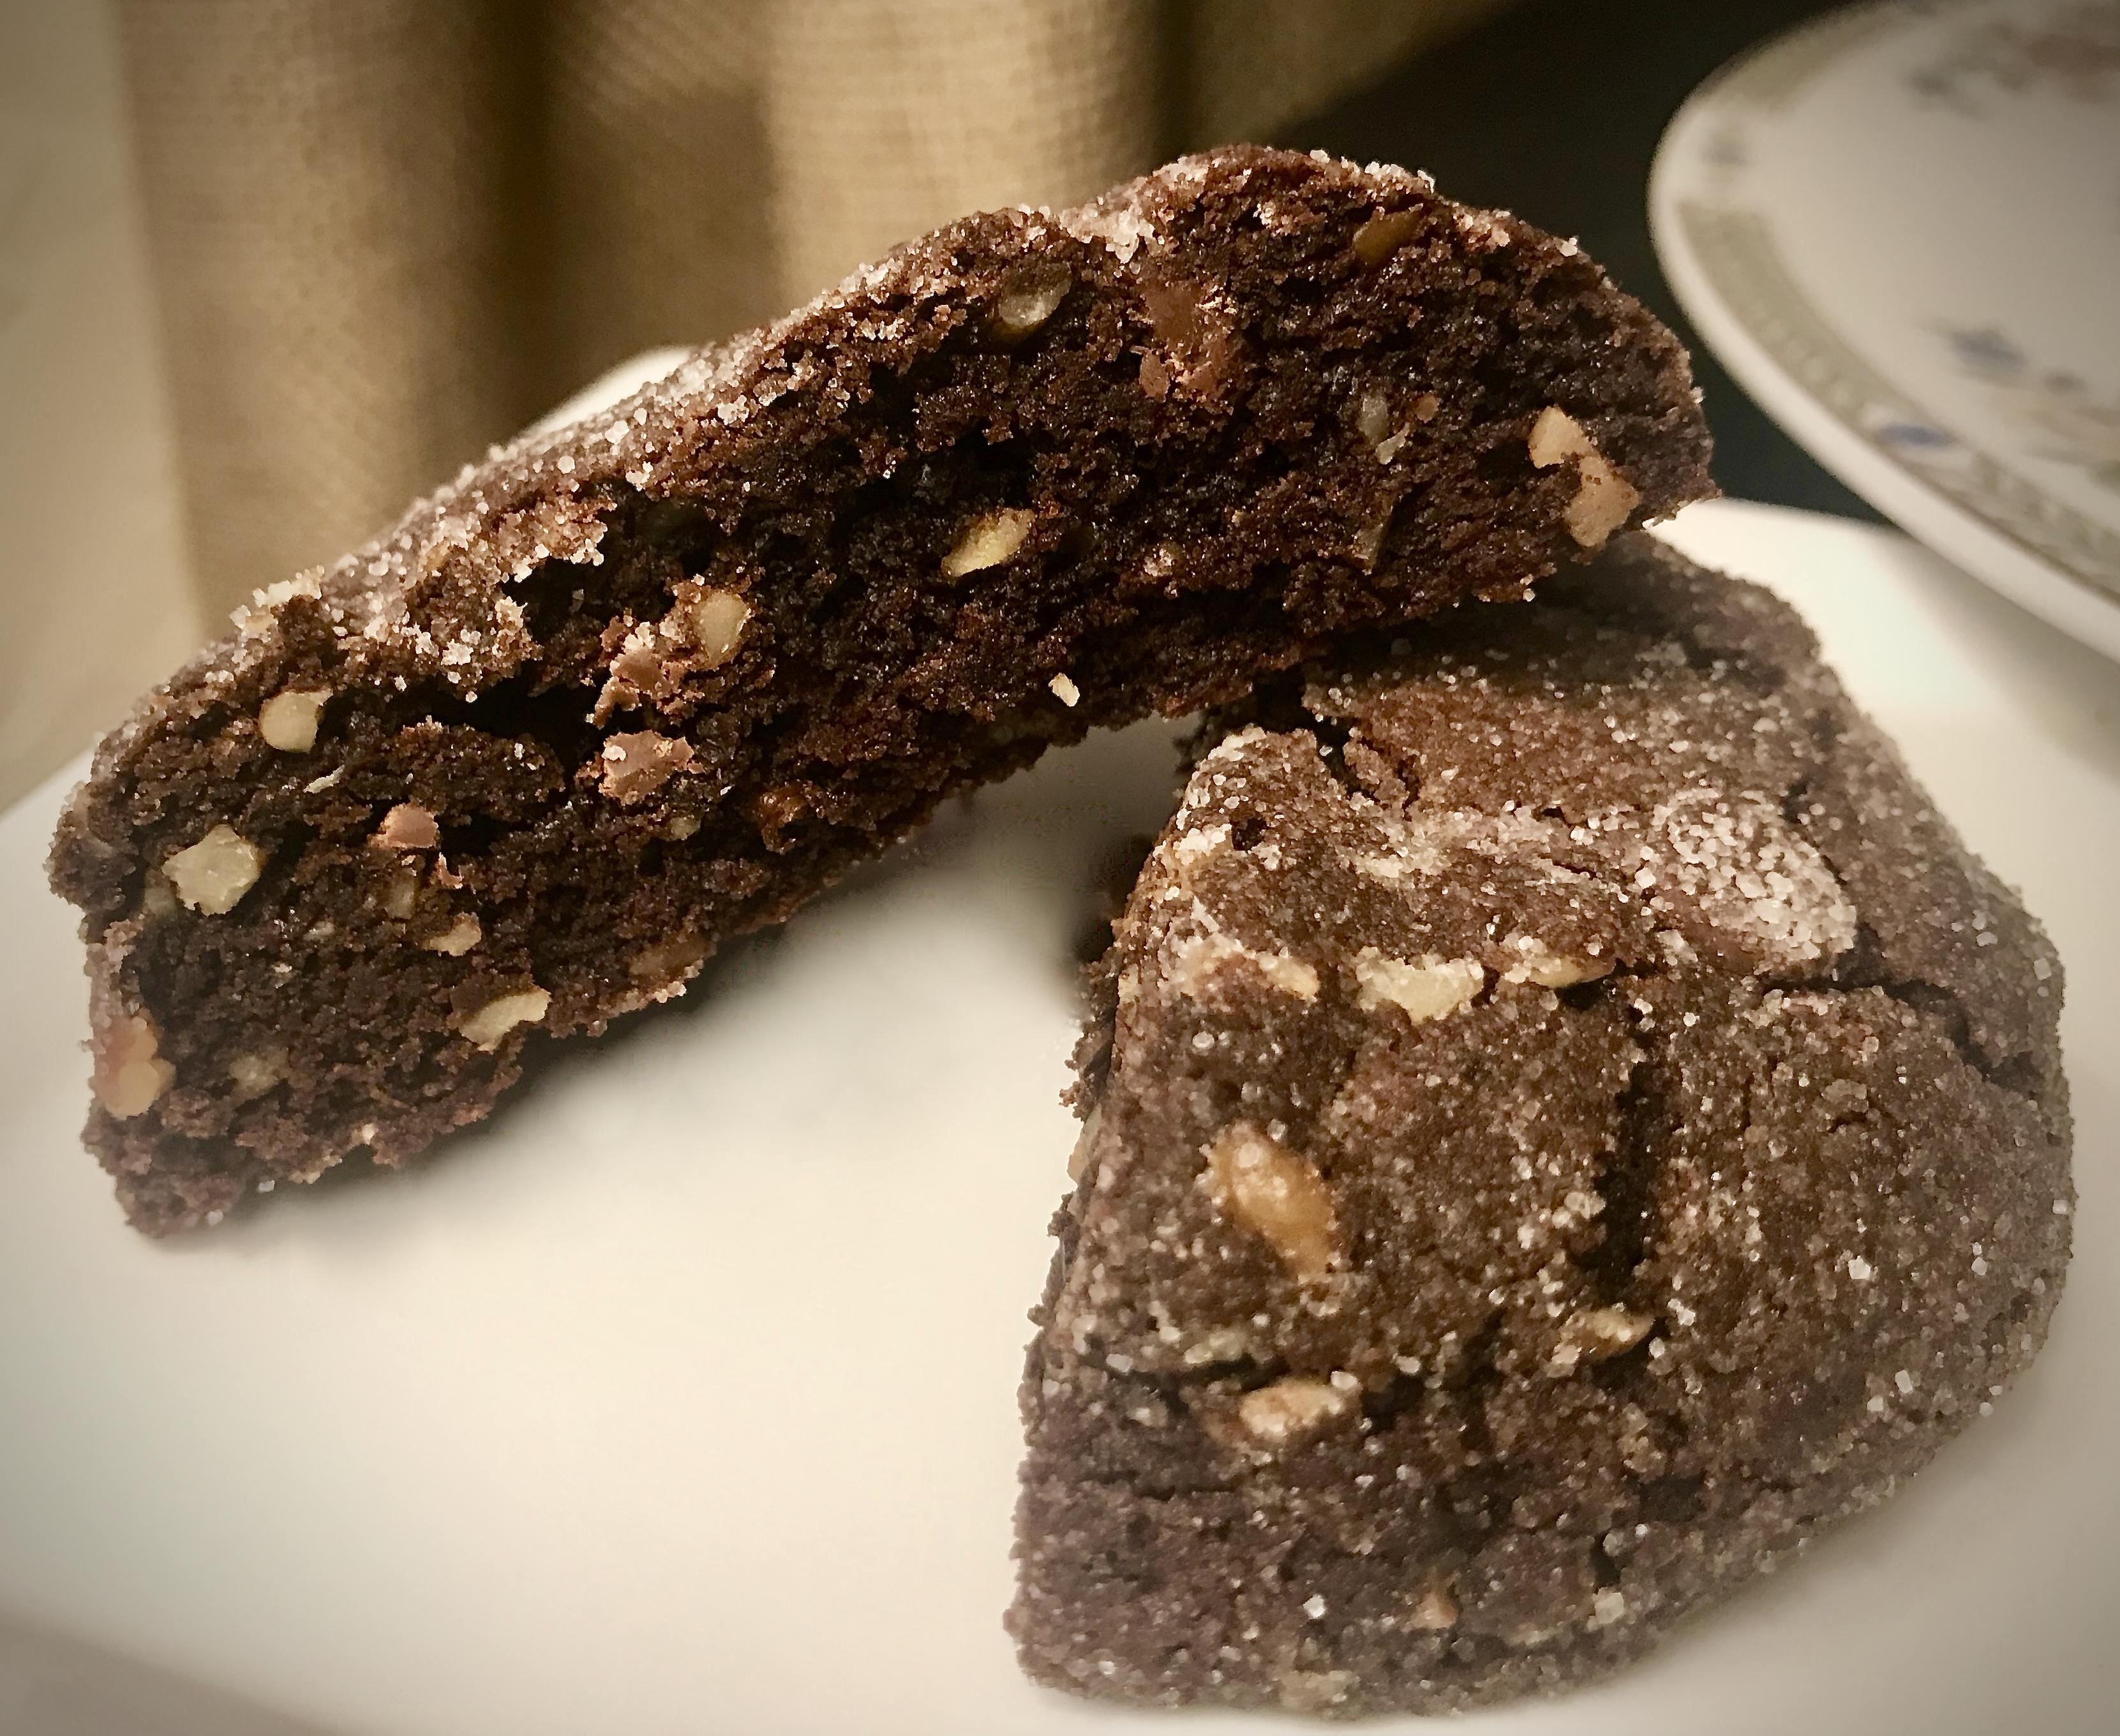 A close up of Seriously Chocolate Cookies